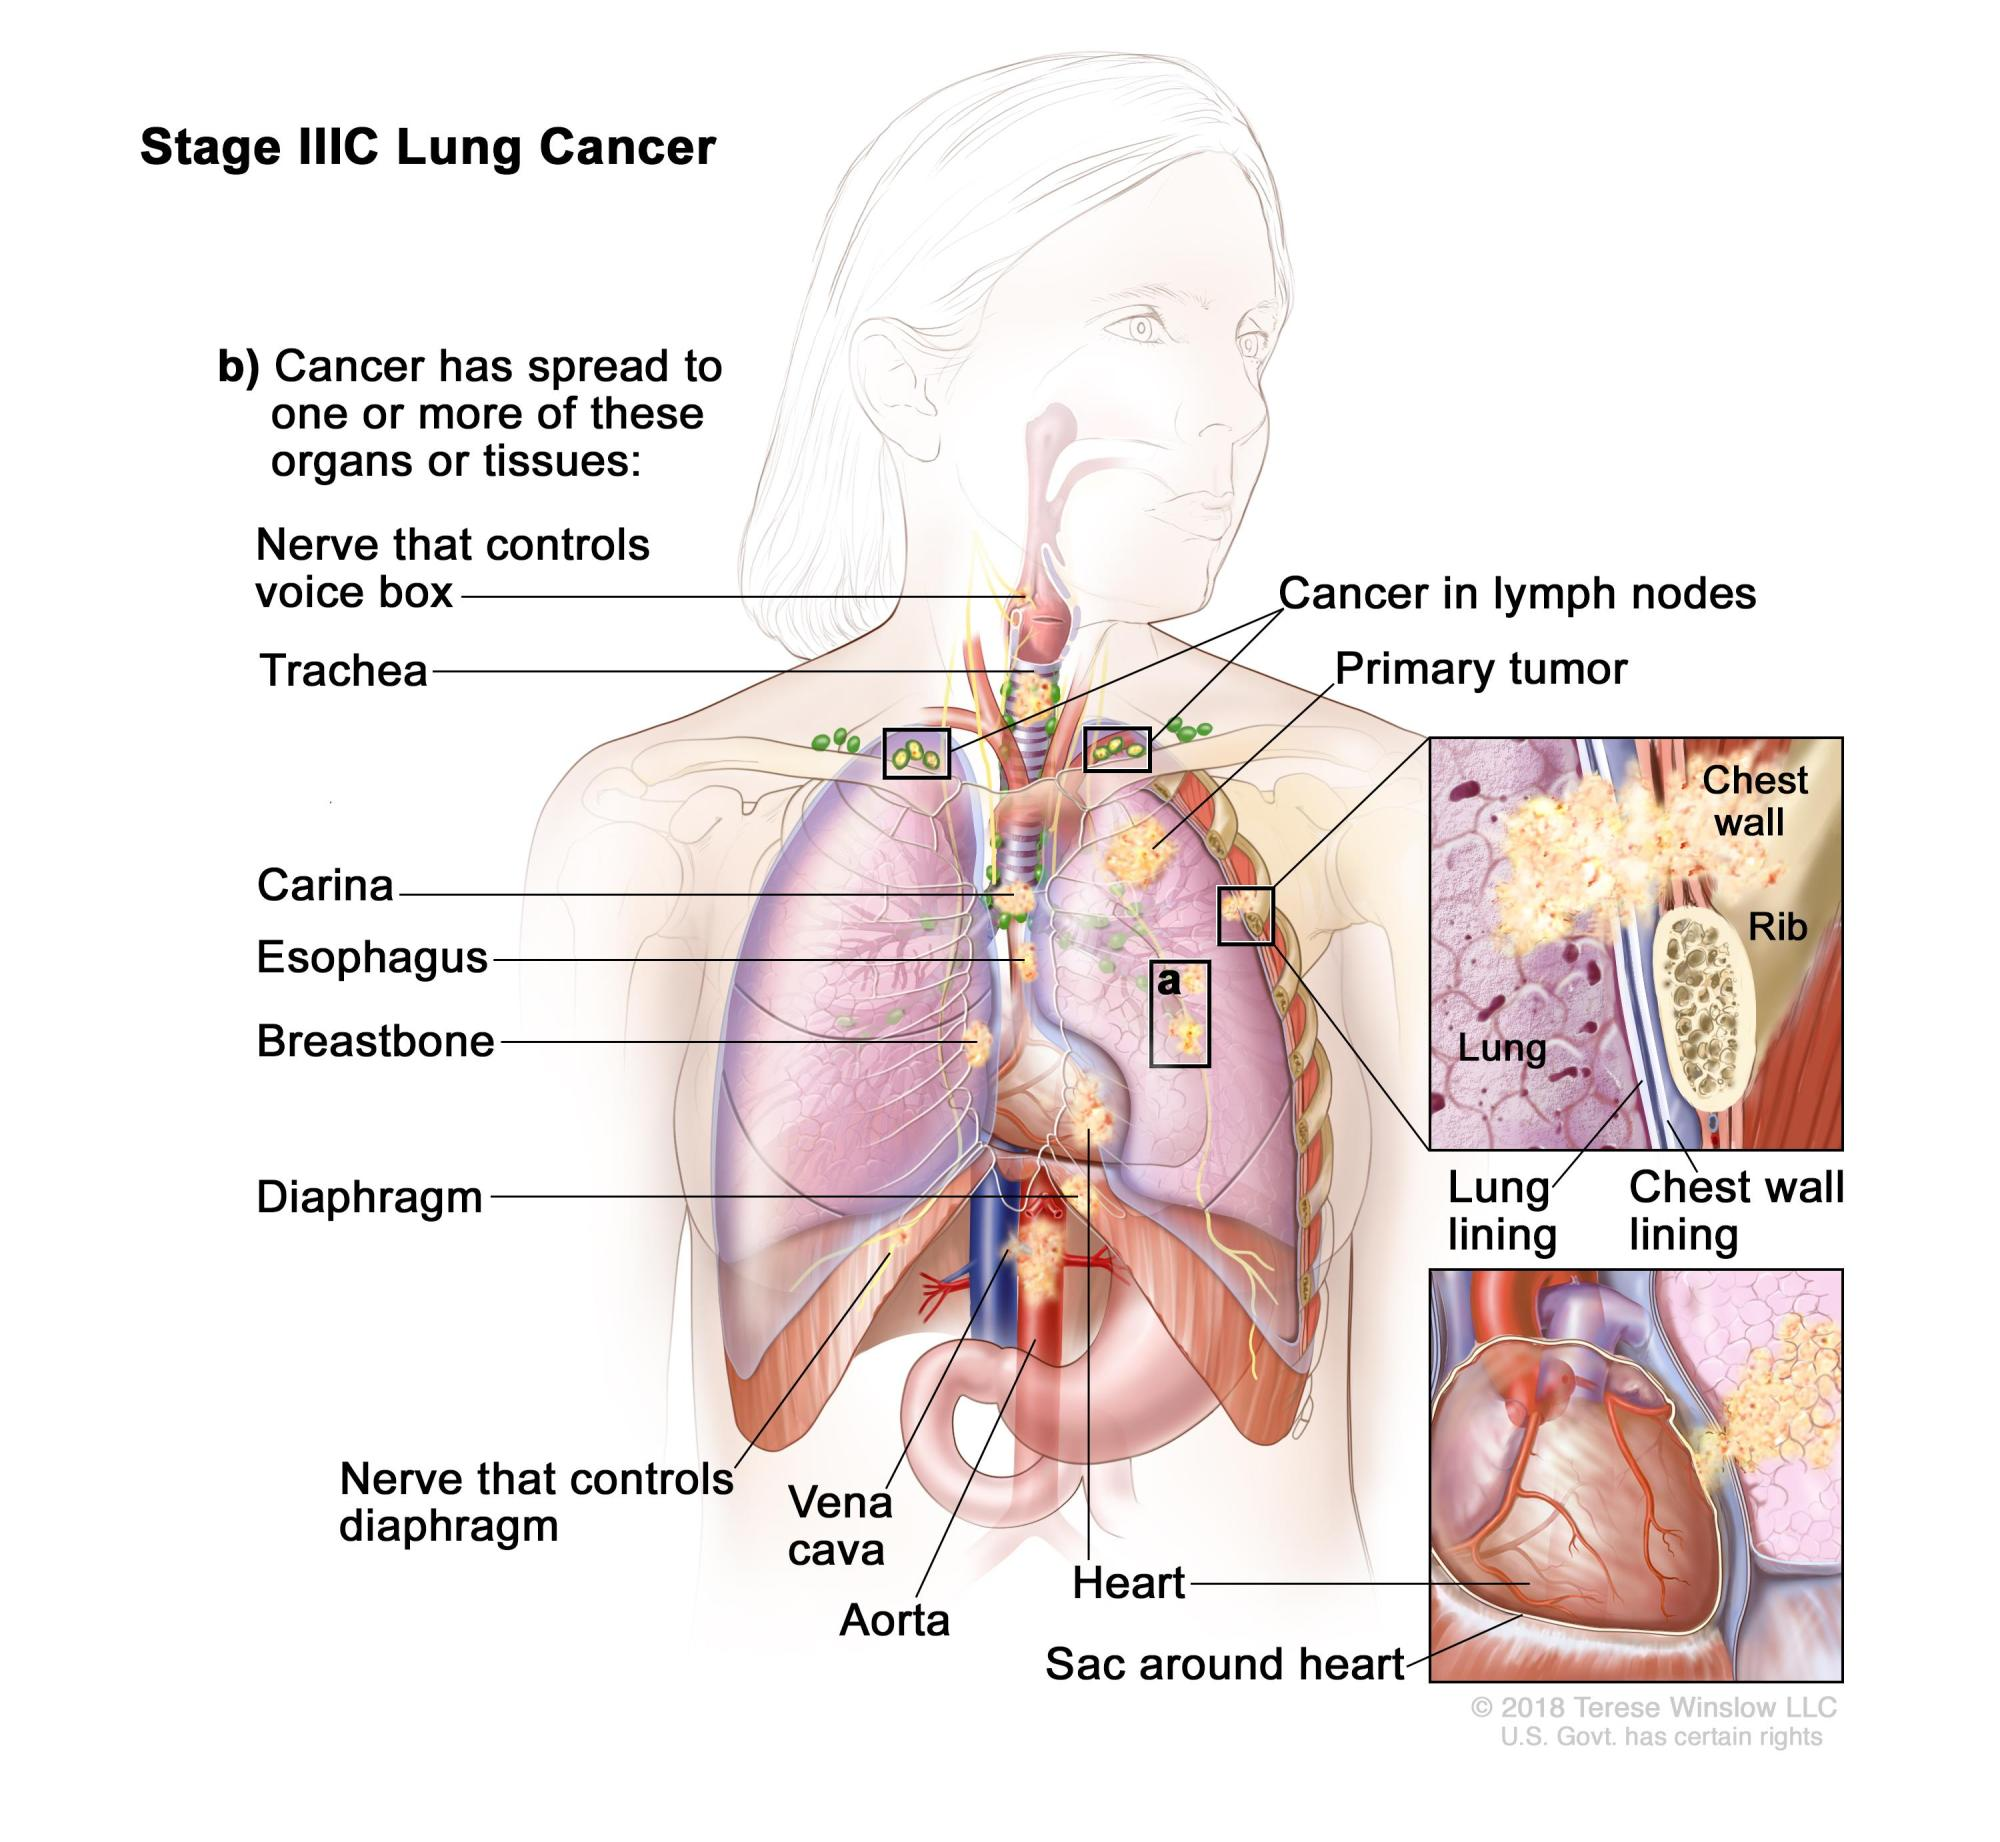 hight resolution of stage iiic lung cancer the tumor may be any size and cancer has spread to lymph nodes above the collarbone on the same side of the chest as the primary